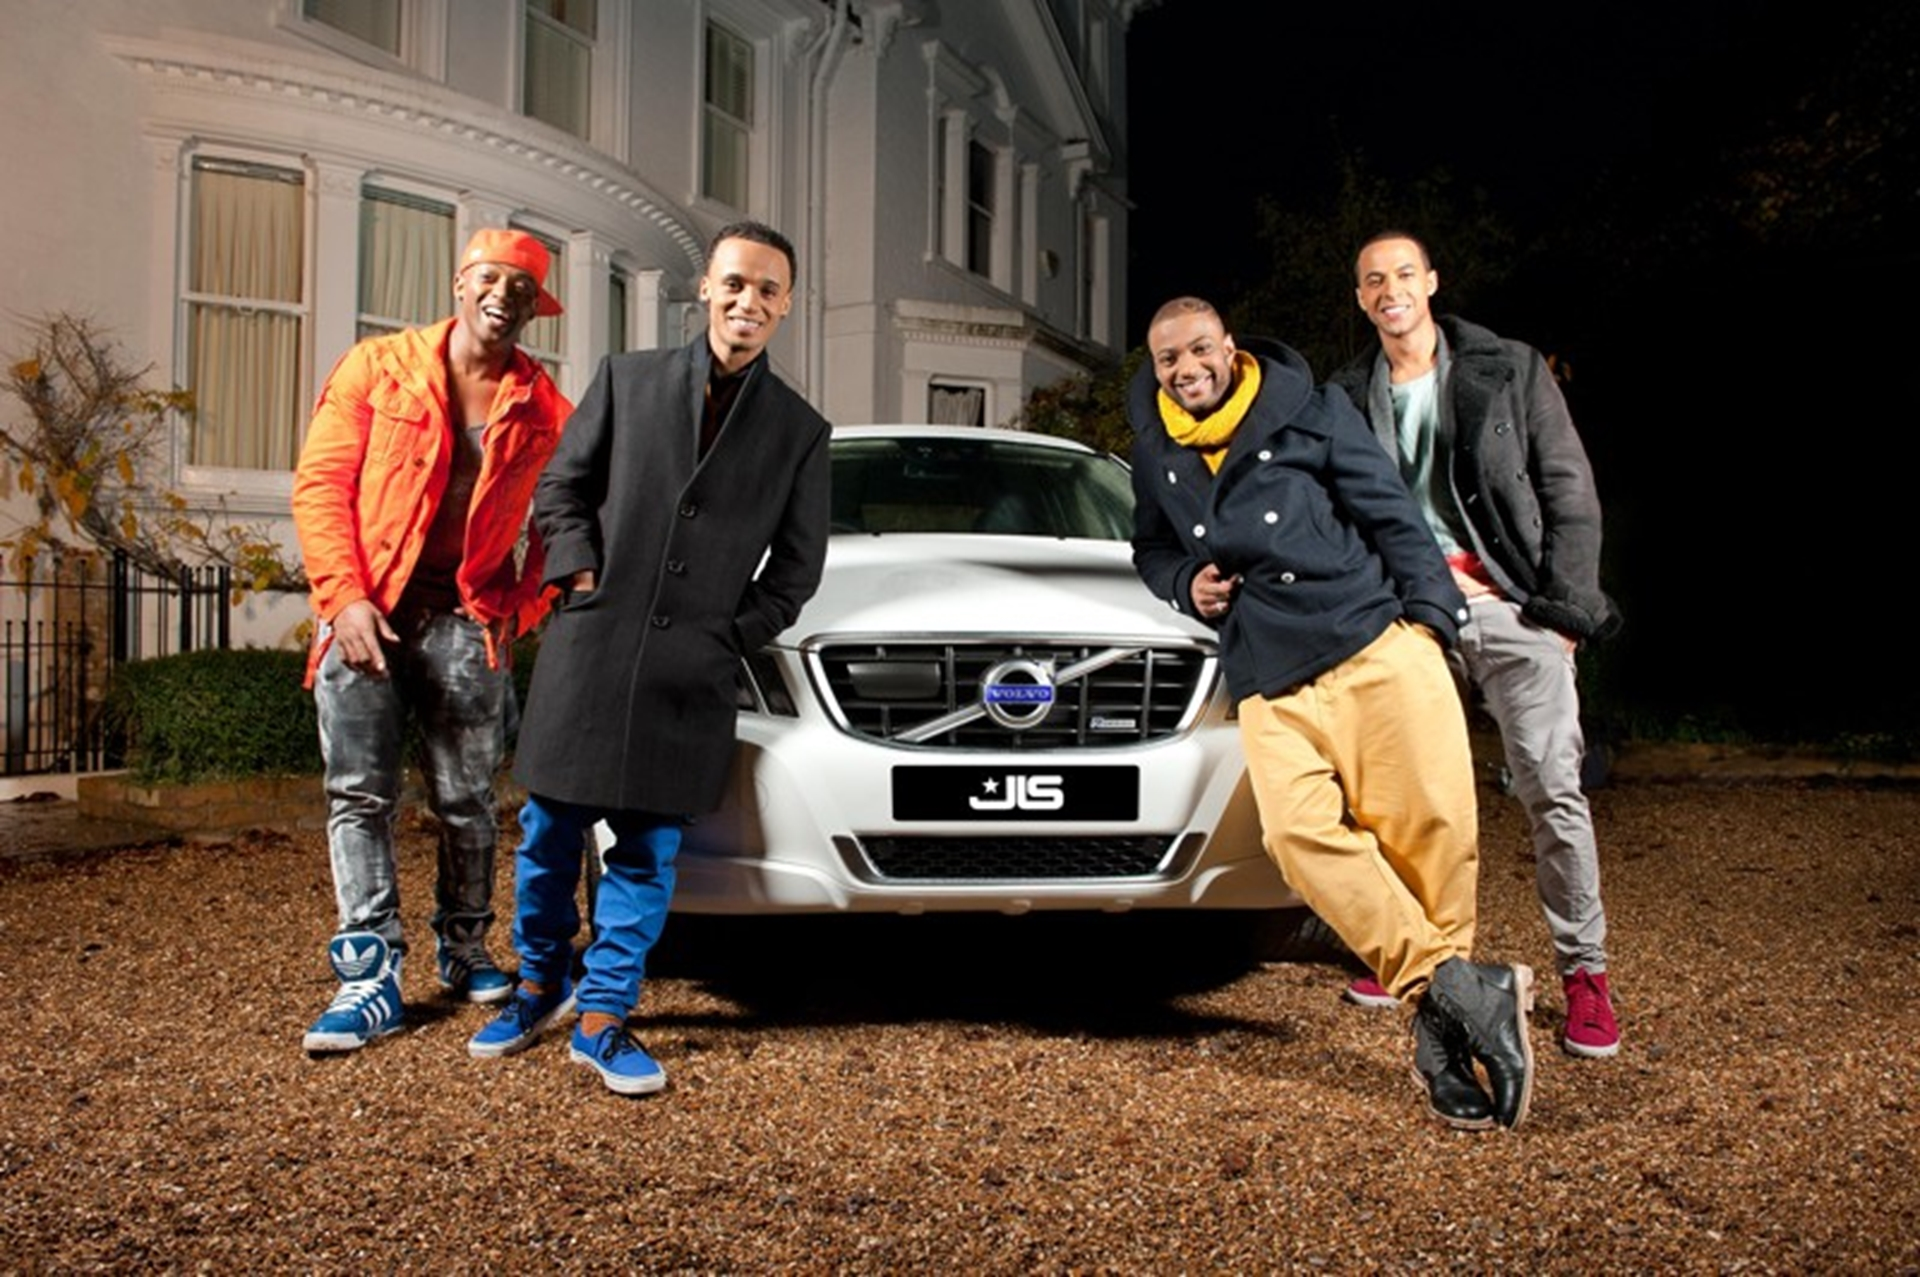 JLS and Volvo